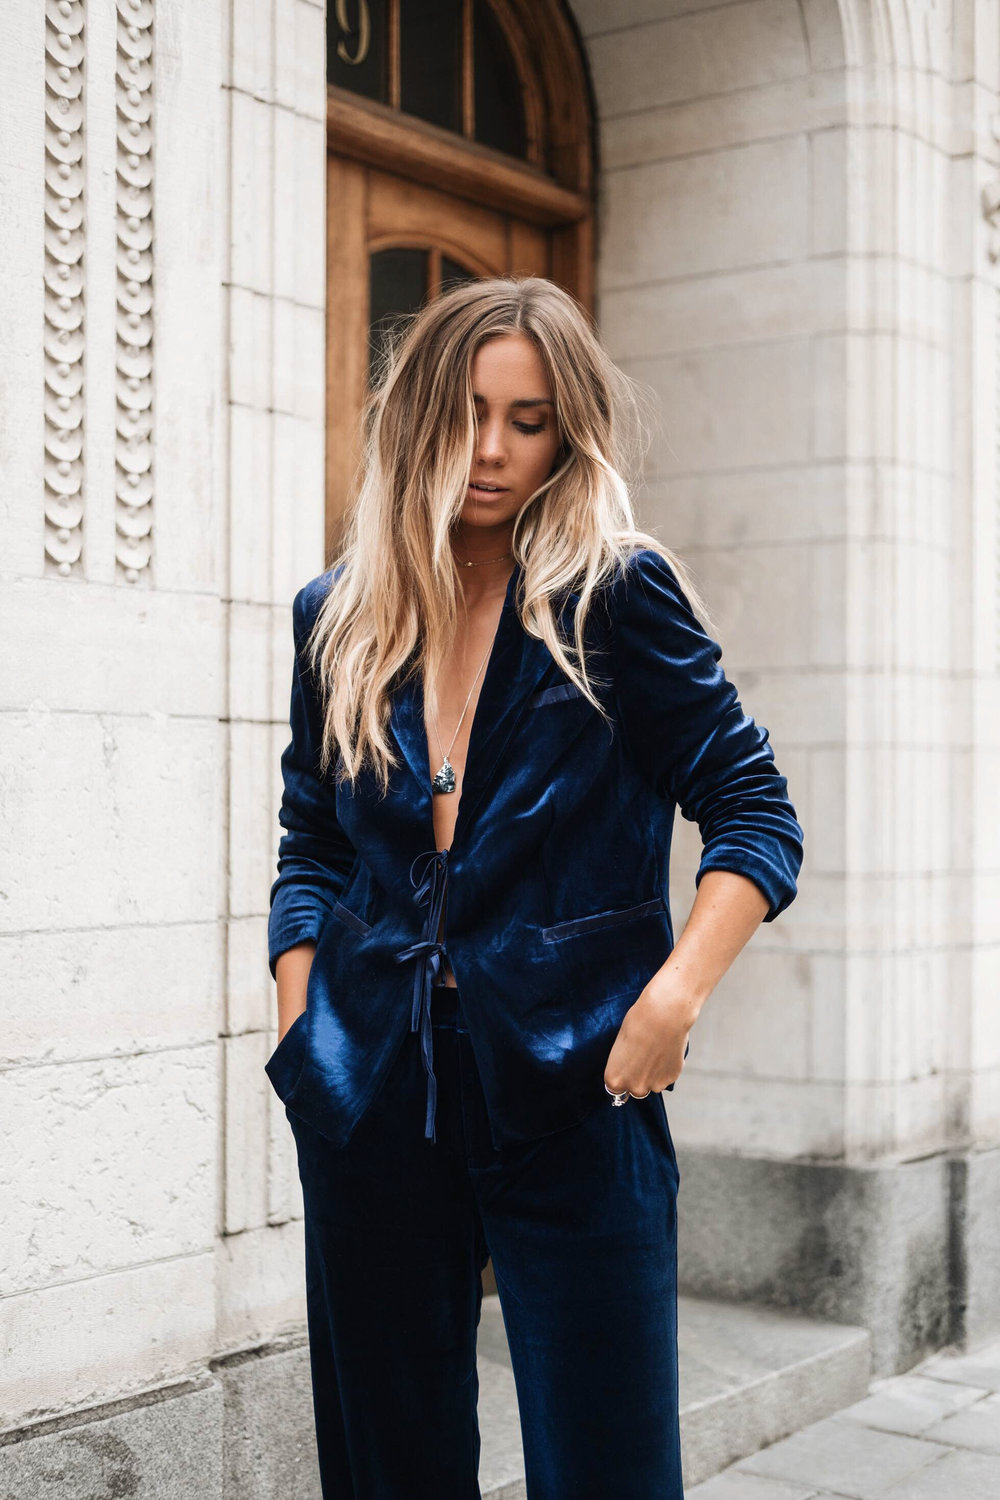 Velvet can have a more casual, almost boho look depending on what you decide to style it with.  (Photo: Lisaplace)